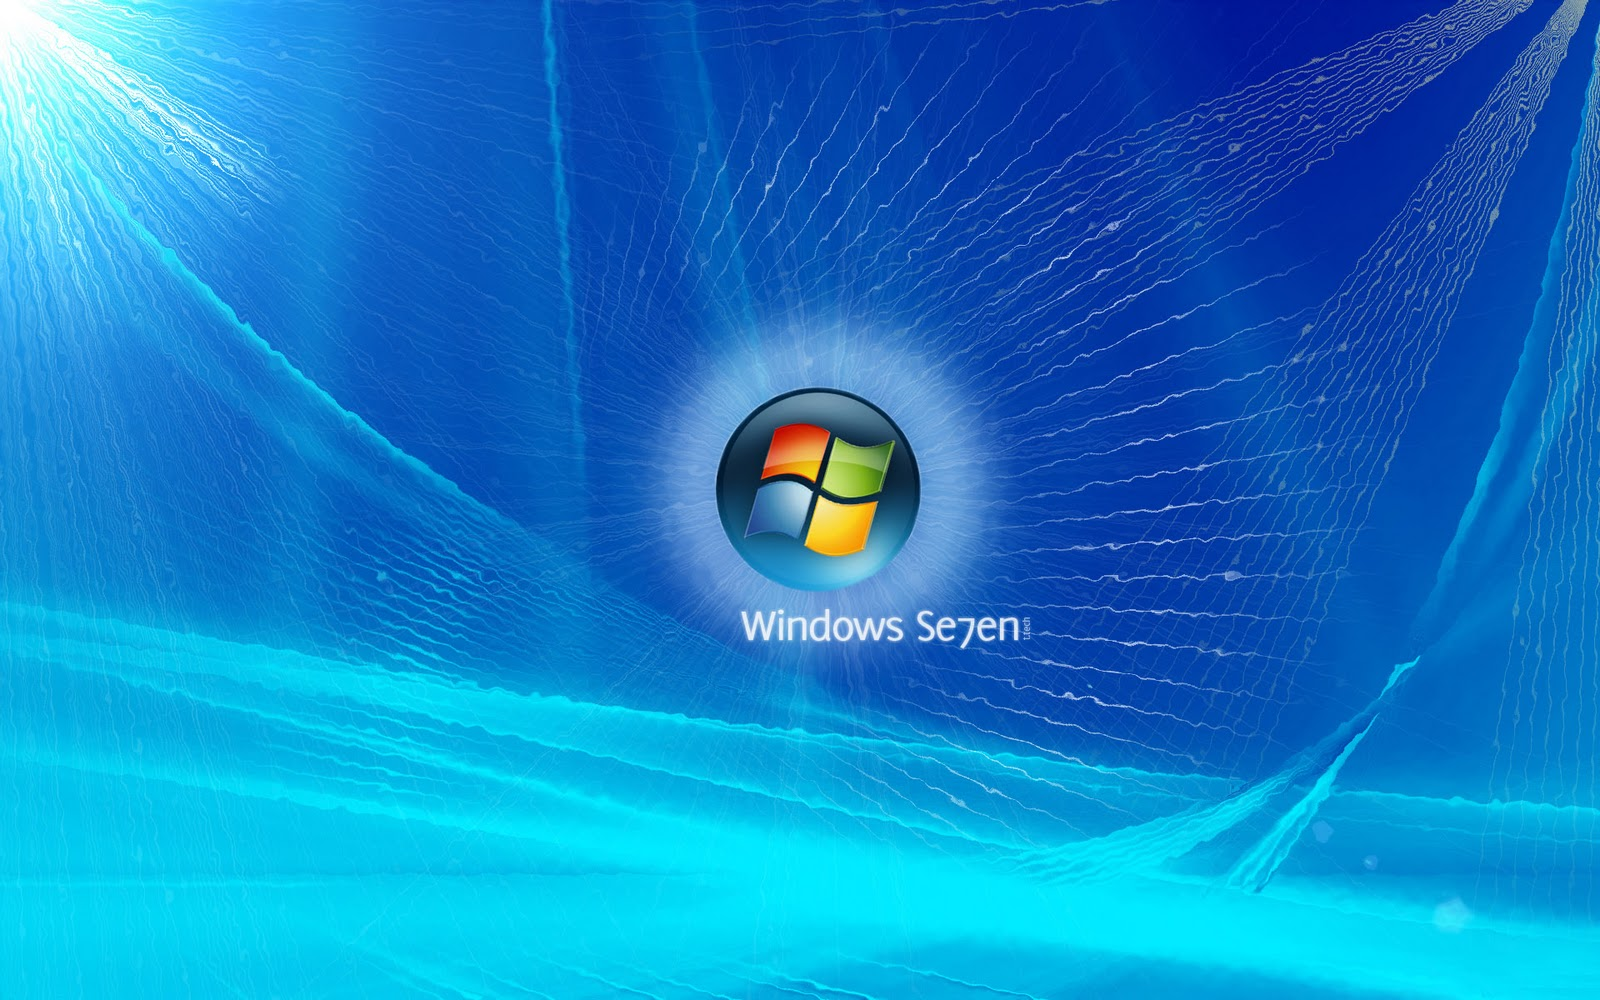 Windows 7 Screensavers